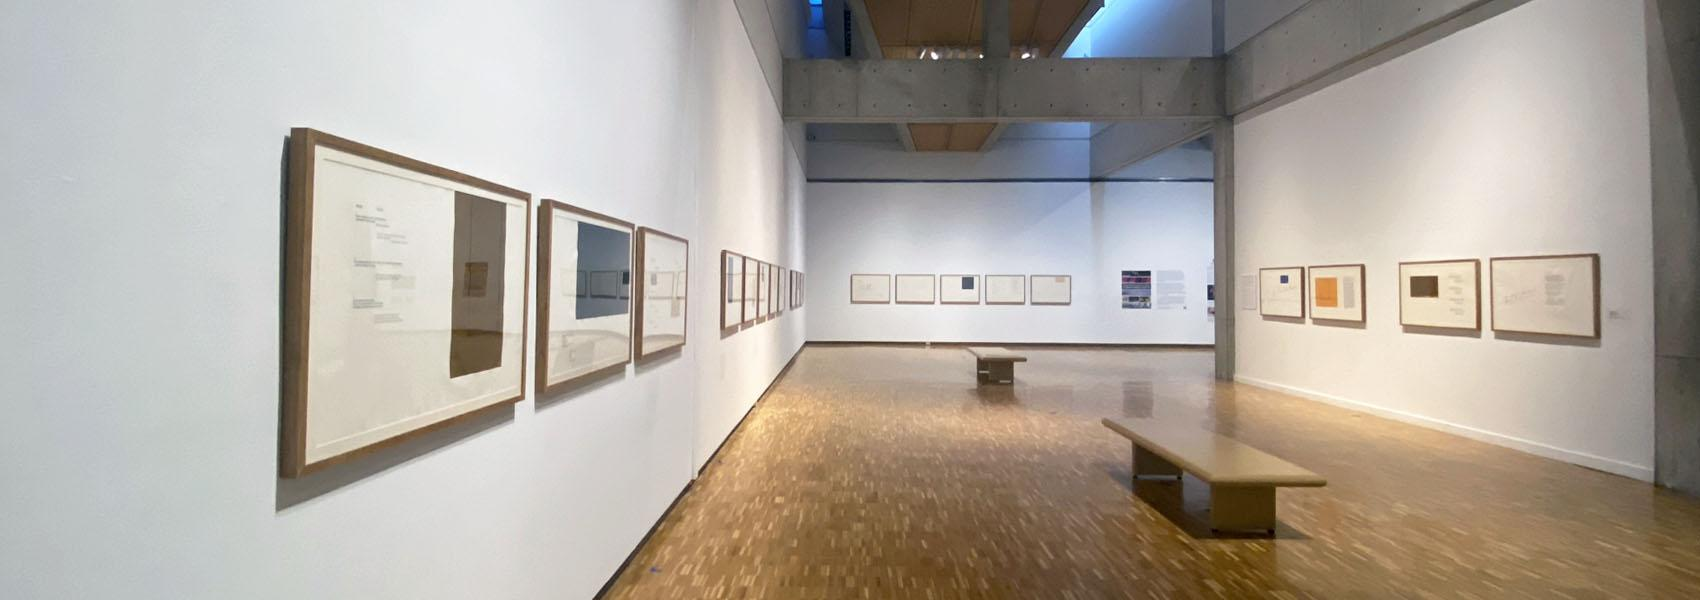 Gallery view of the Exhibition Robert Motherwell: Contemplative Beholding